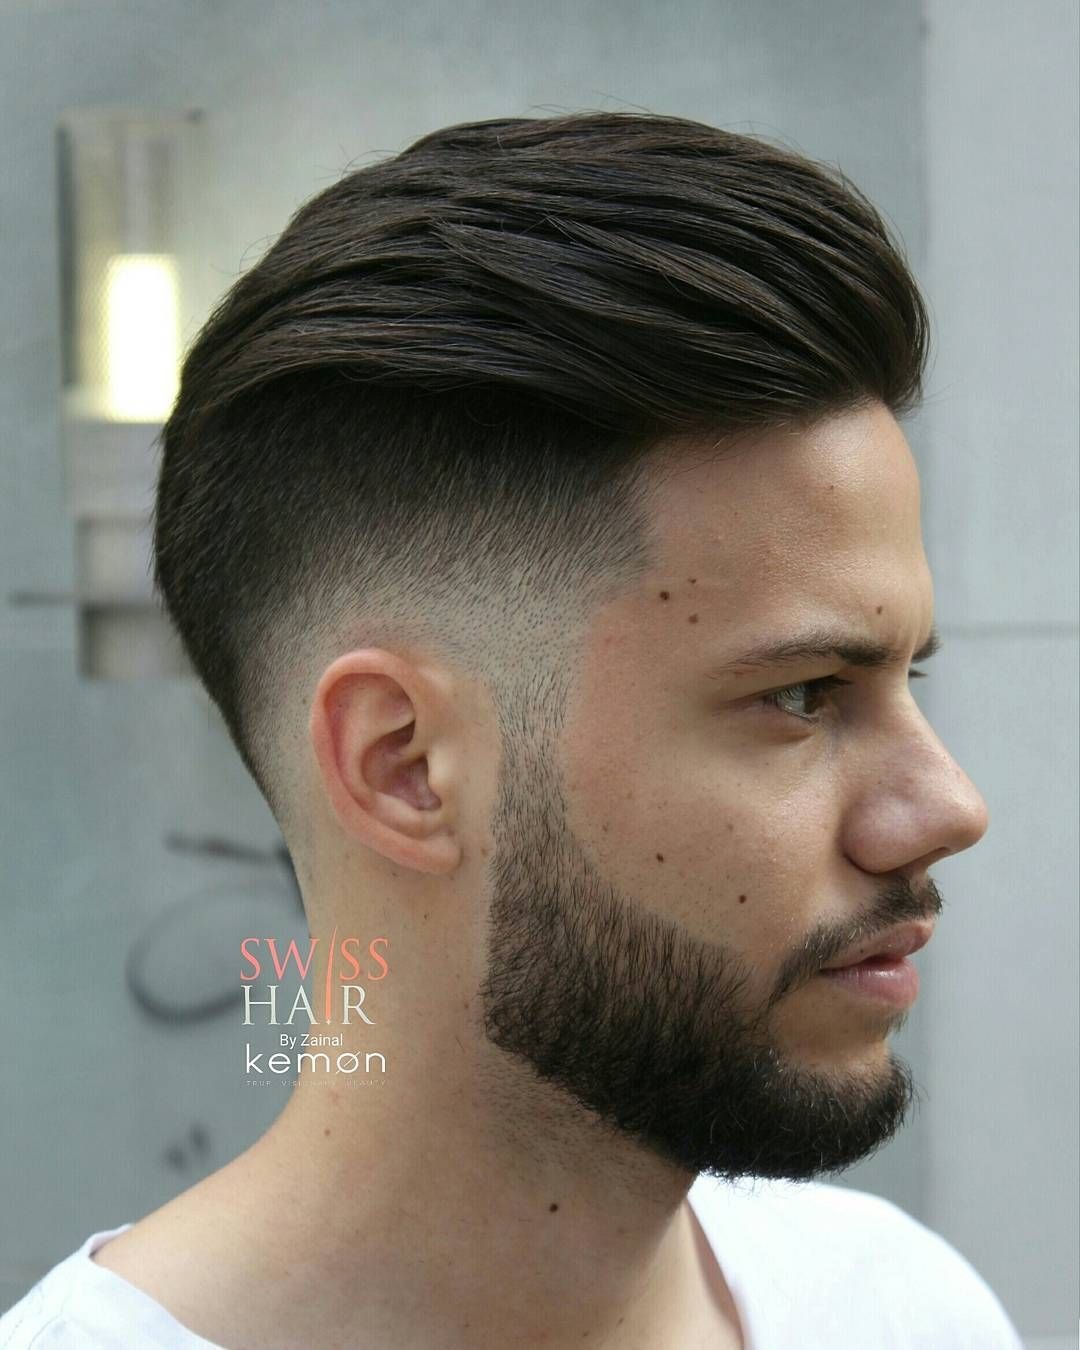 Barber And Hairstylist Zainal Swisshairbyzainal Instagram Photos And Men 39 S Great